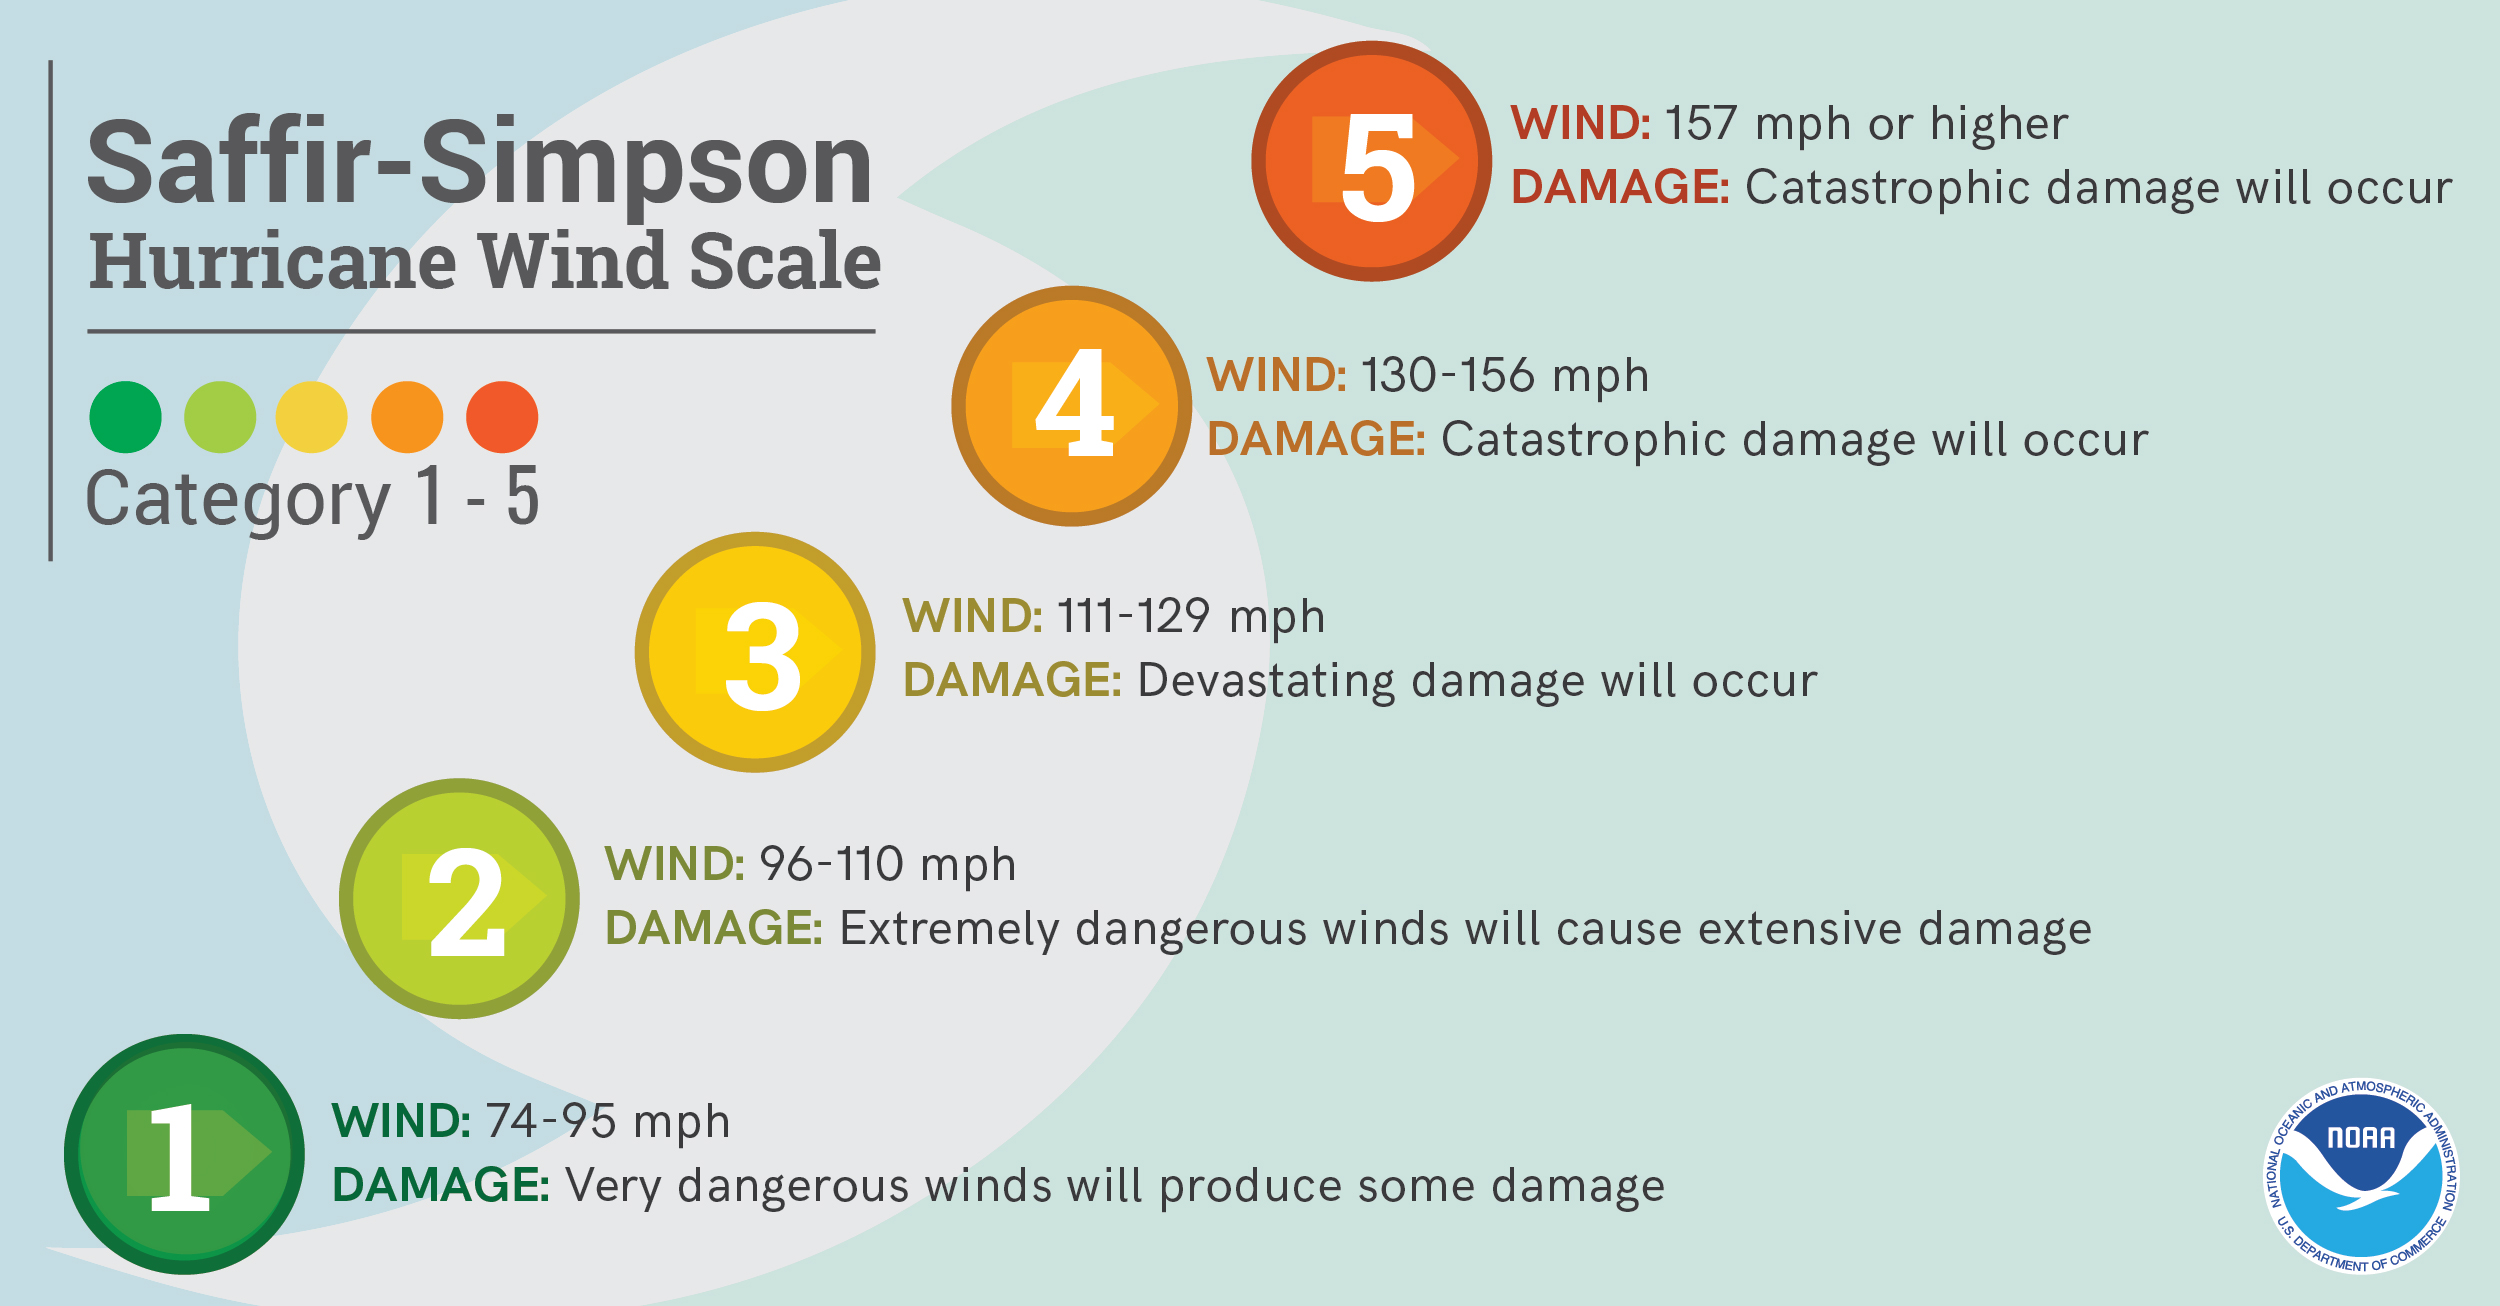 Categories 1-5. 1- Wind: 74-95 mph. Damage: very dangerous winds will produce some damage. 2- Wind: 96-110mph. Damage: Extremely dangerous will cause extensive damage. 3- Wind: 111-129 mph. Damage: devasting damage occur. 4- Wind: 130-156 mph. Damage: catastrophic damage will occur. 5- Wind: 157 or higher. Damage: catastrophic damage occur.